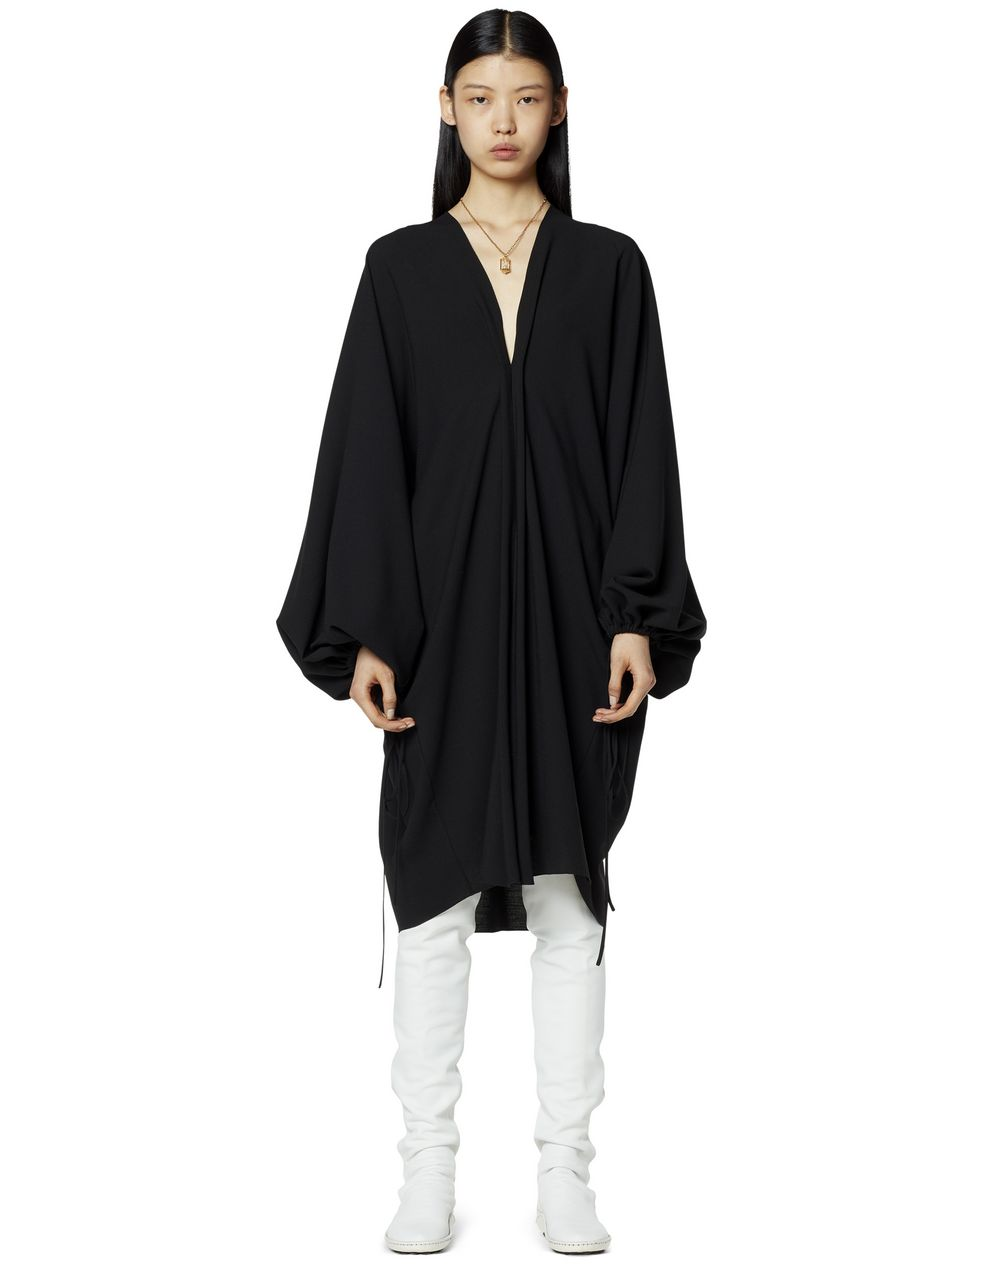 MID-LENGTH WOOL DRESS - Lanvin